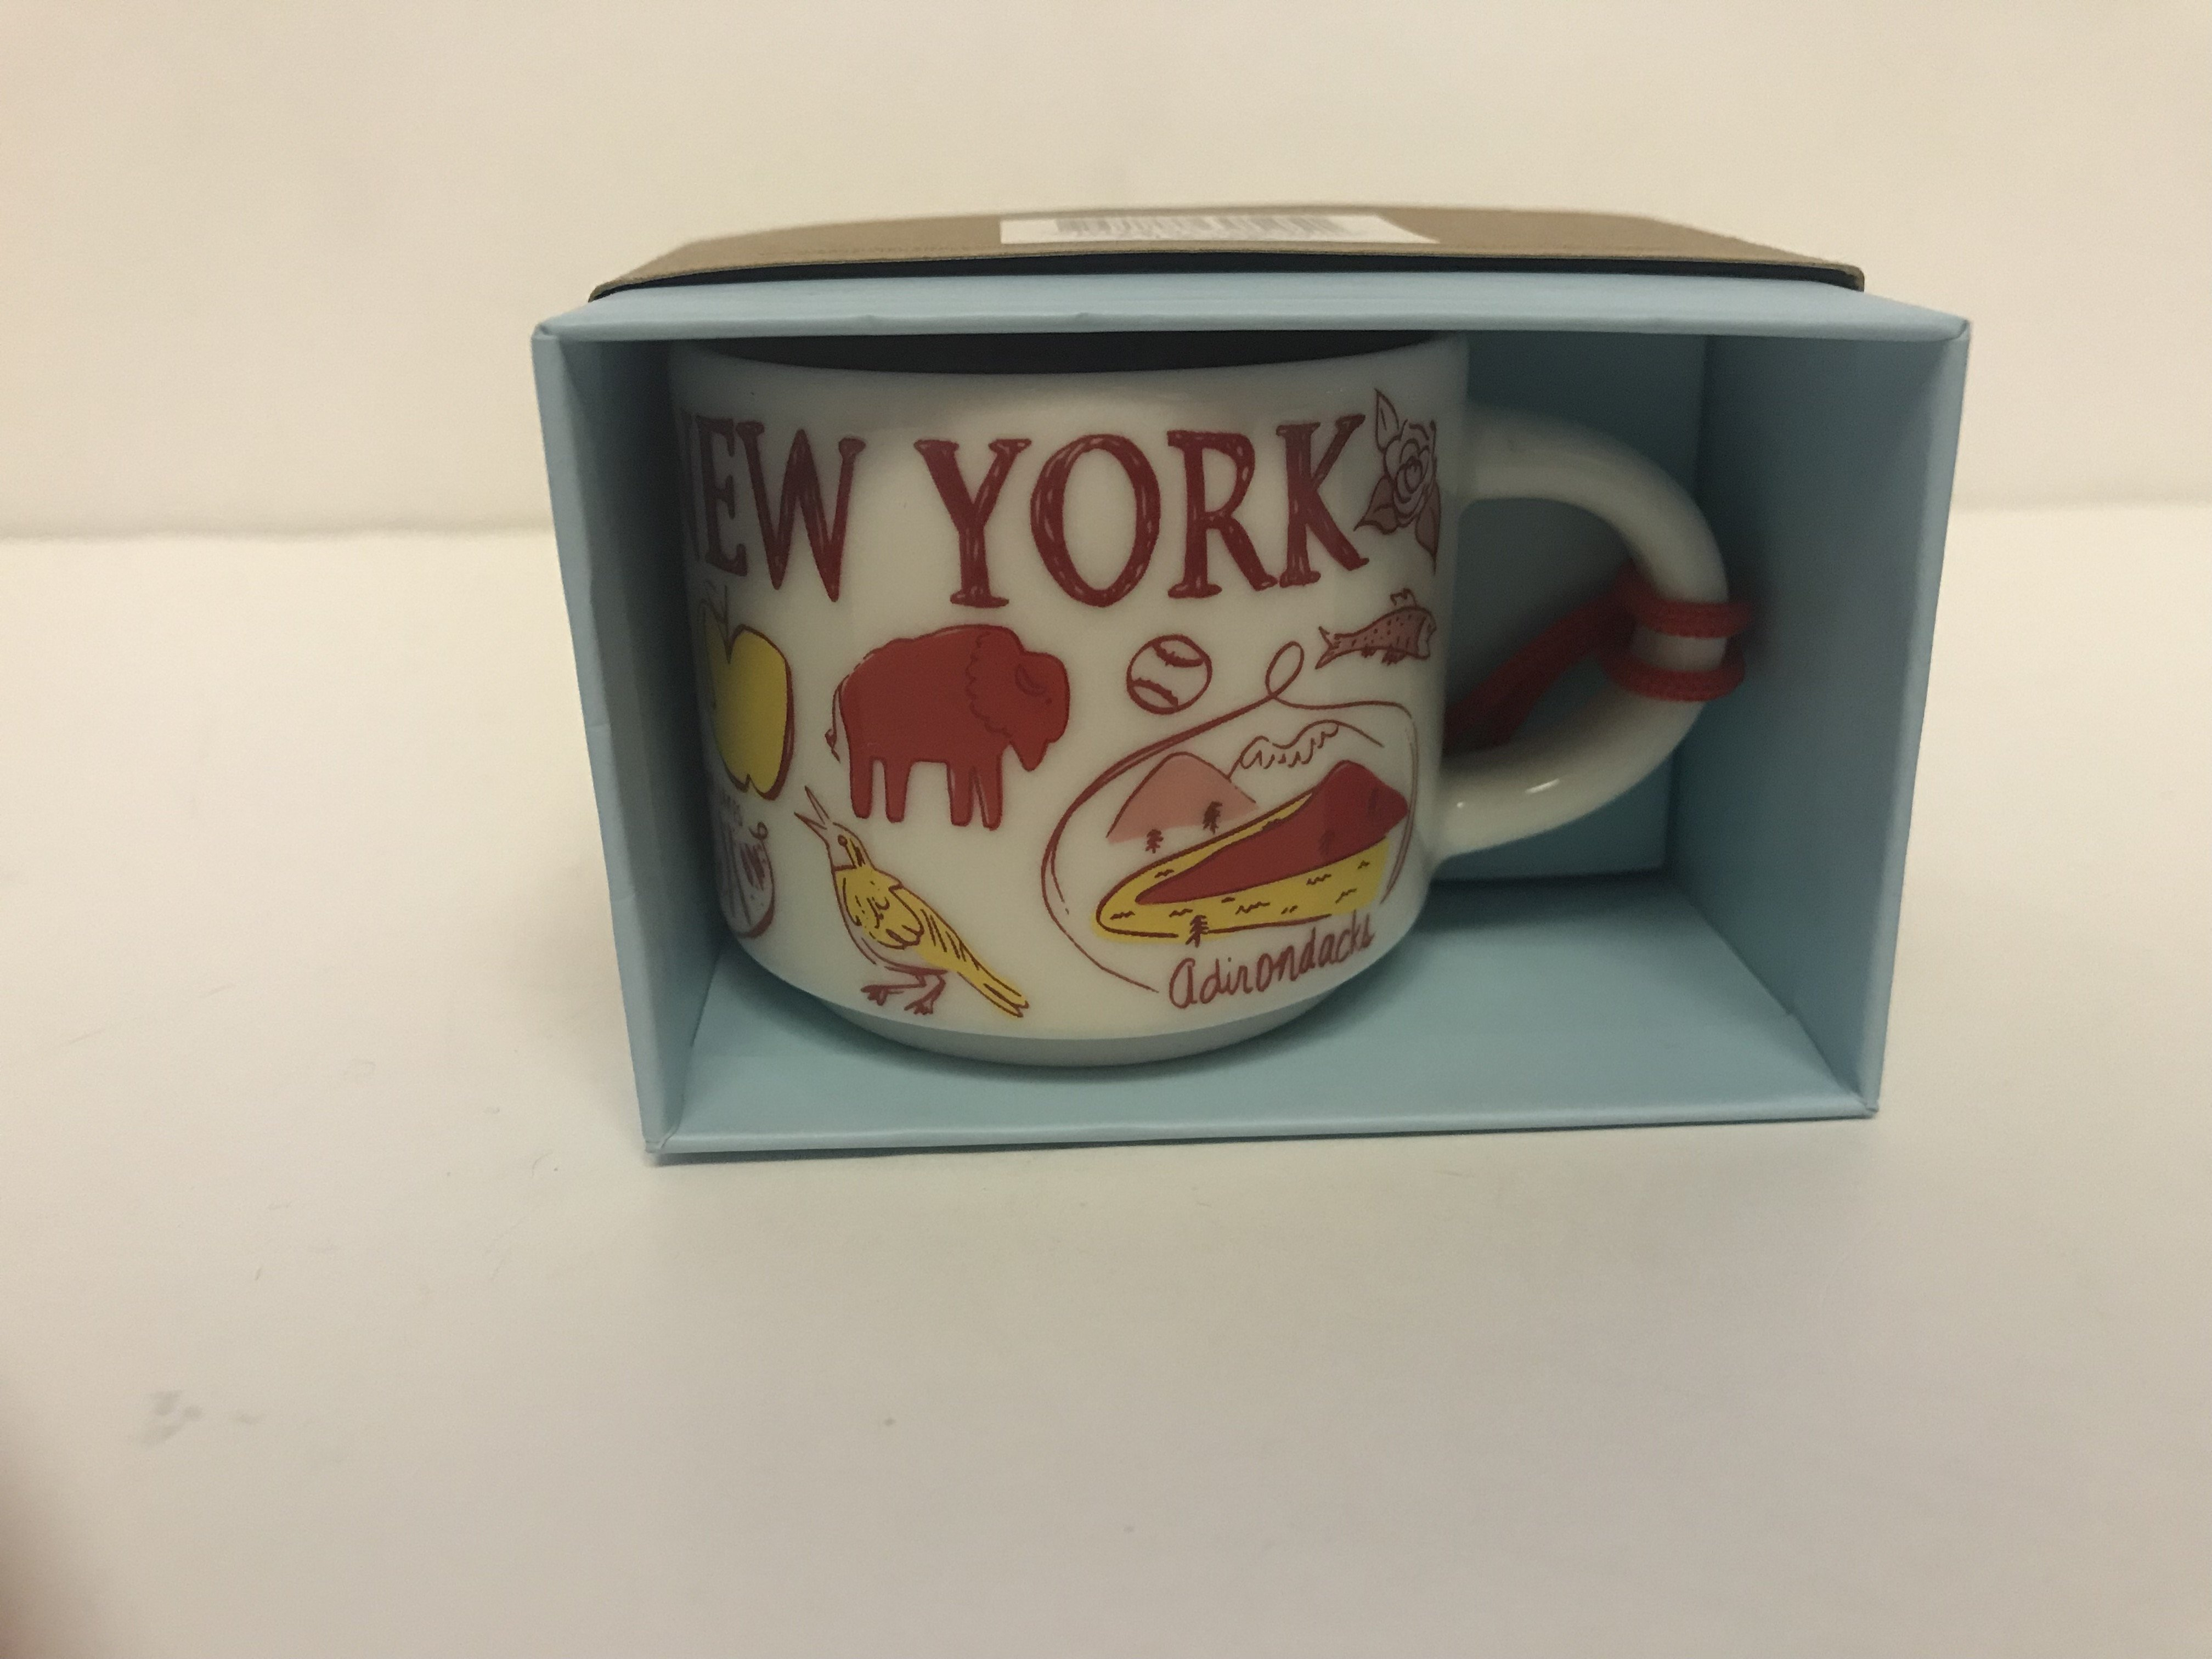 Starbucks Coffee Been There New York Ceramic Mug Ornament New With Box Walmart Com Walmart Com